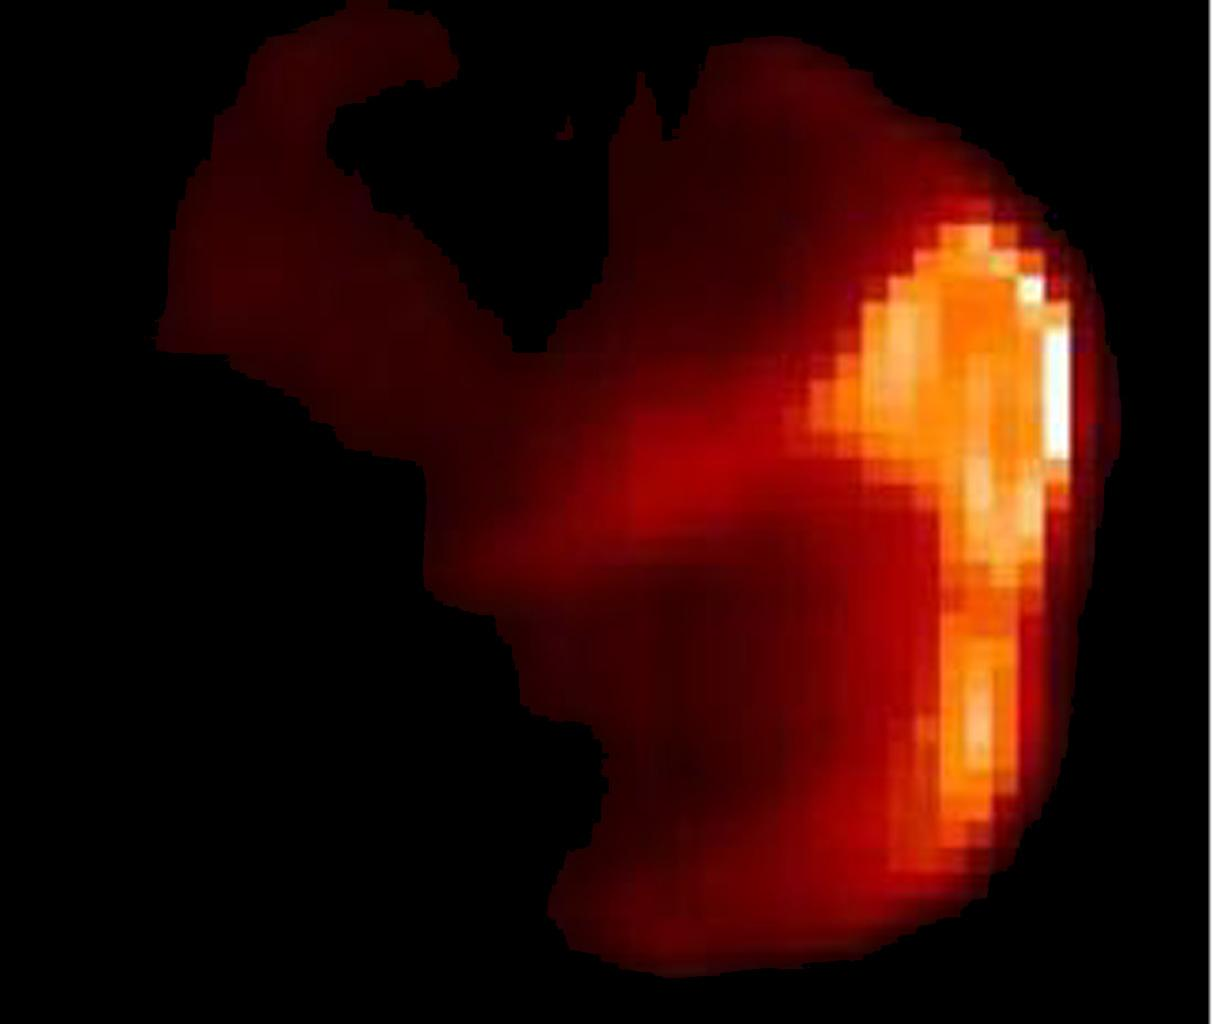 This image composite shows comet Tempel 1 in infrared light . The infrared picture highlights the warm, or sunlit, side of the comet, where NASA's Deep Impact probe later hit.